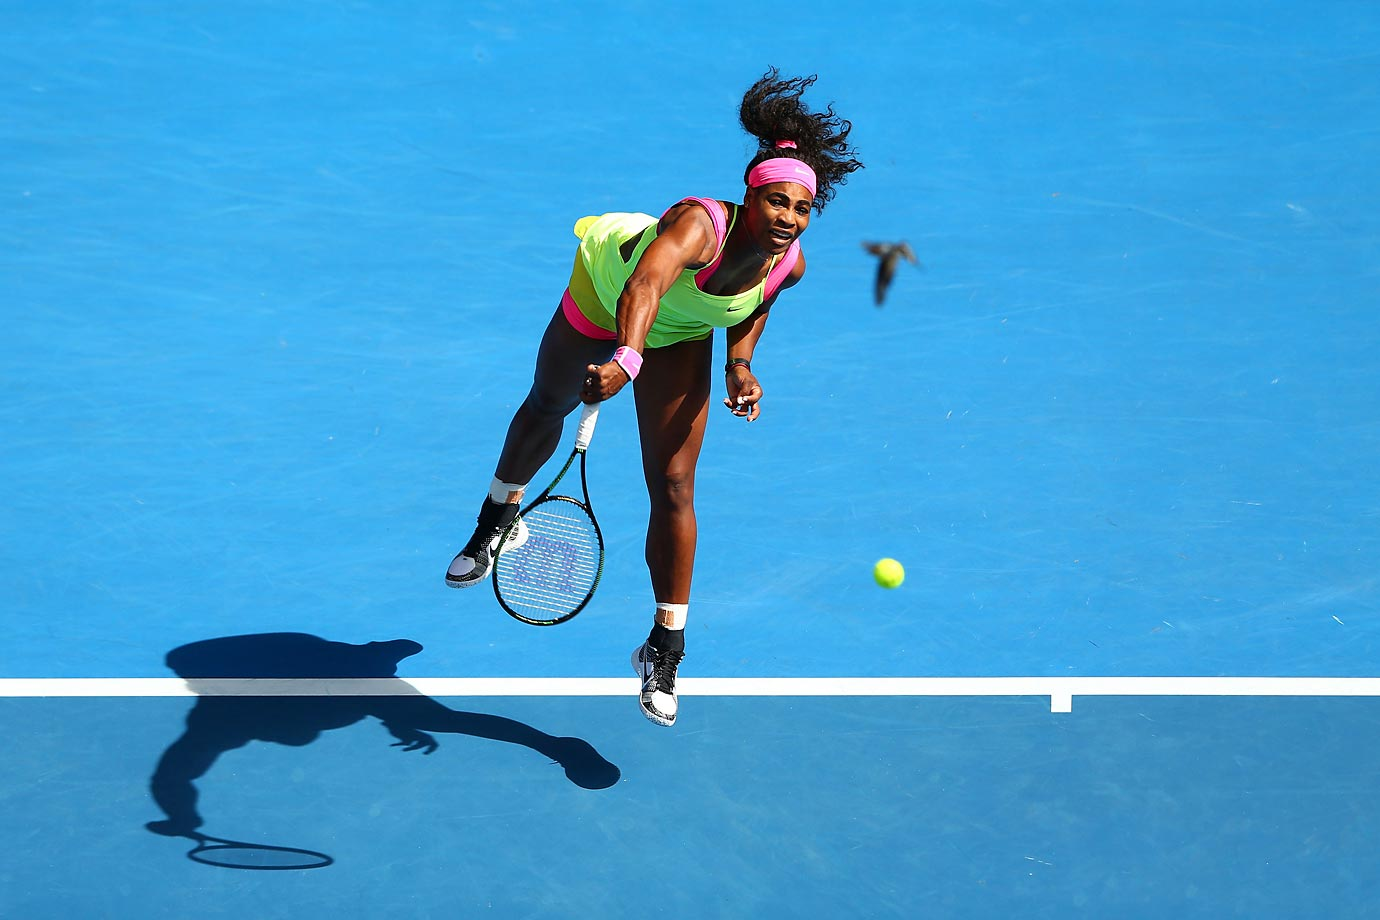 Is that a bird flying by Serena Williams at the Australian Open?